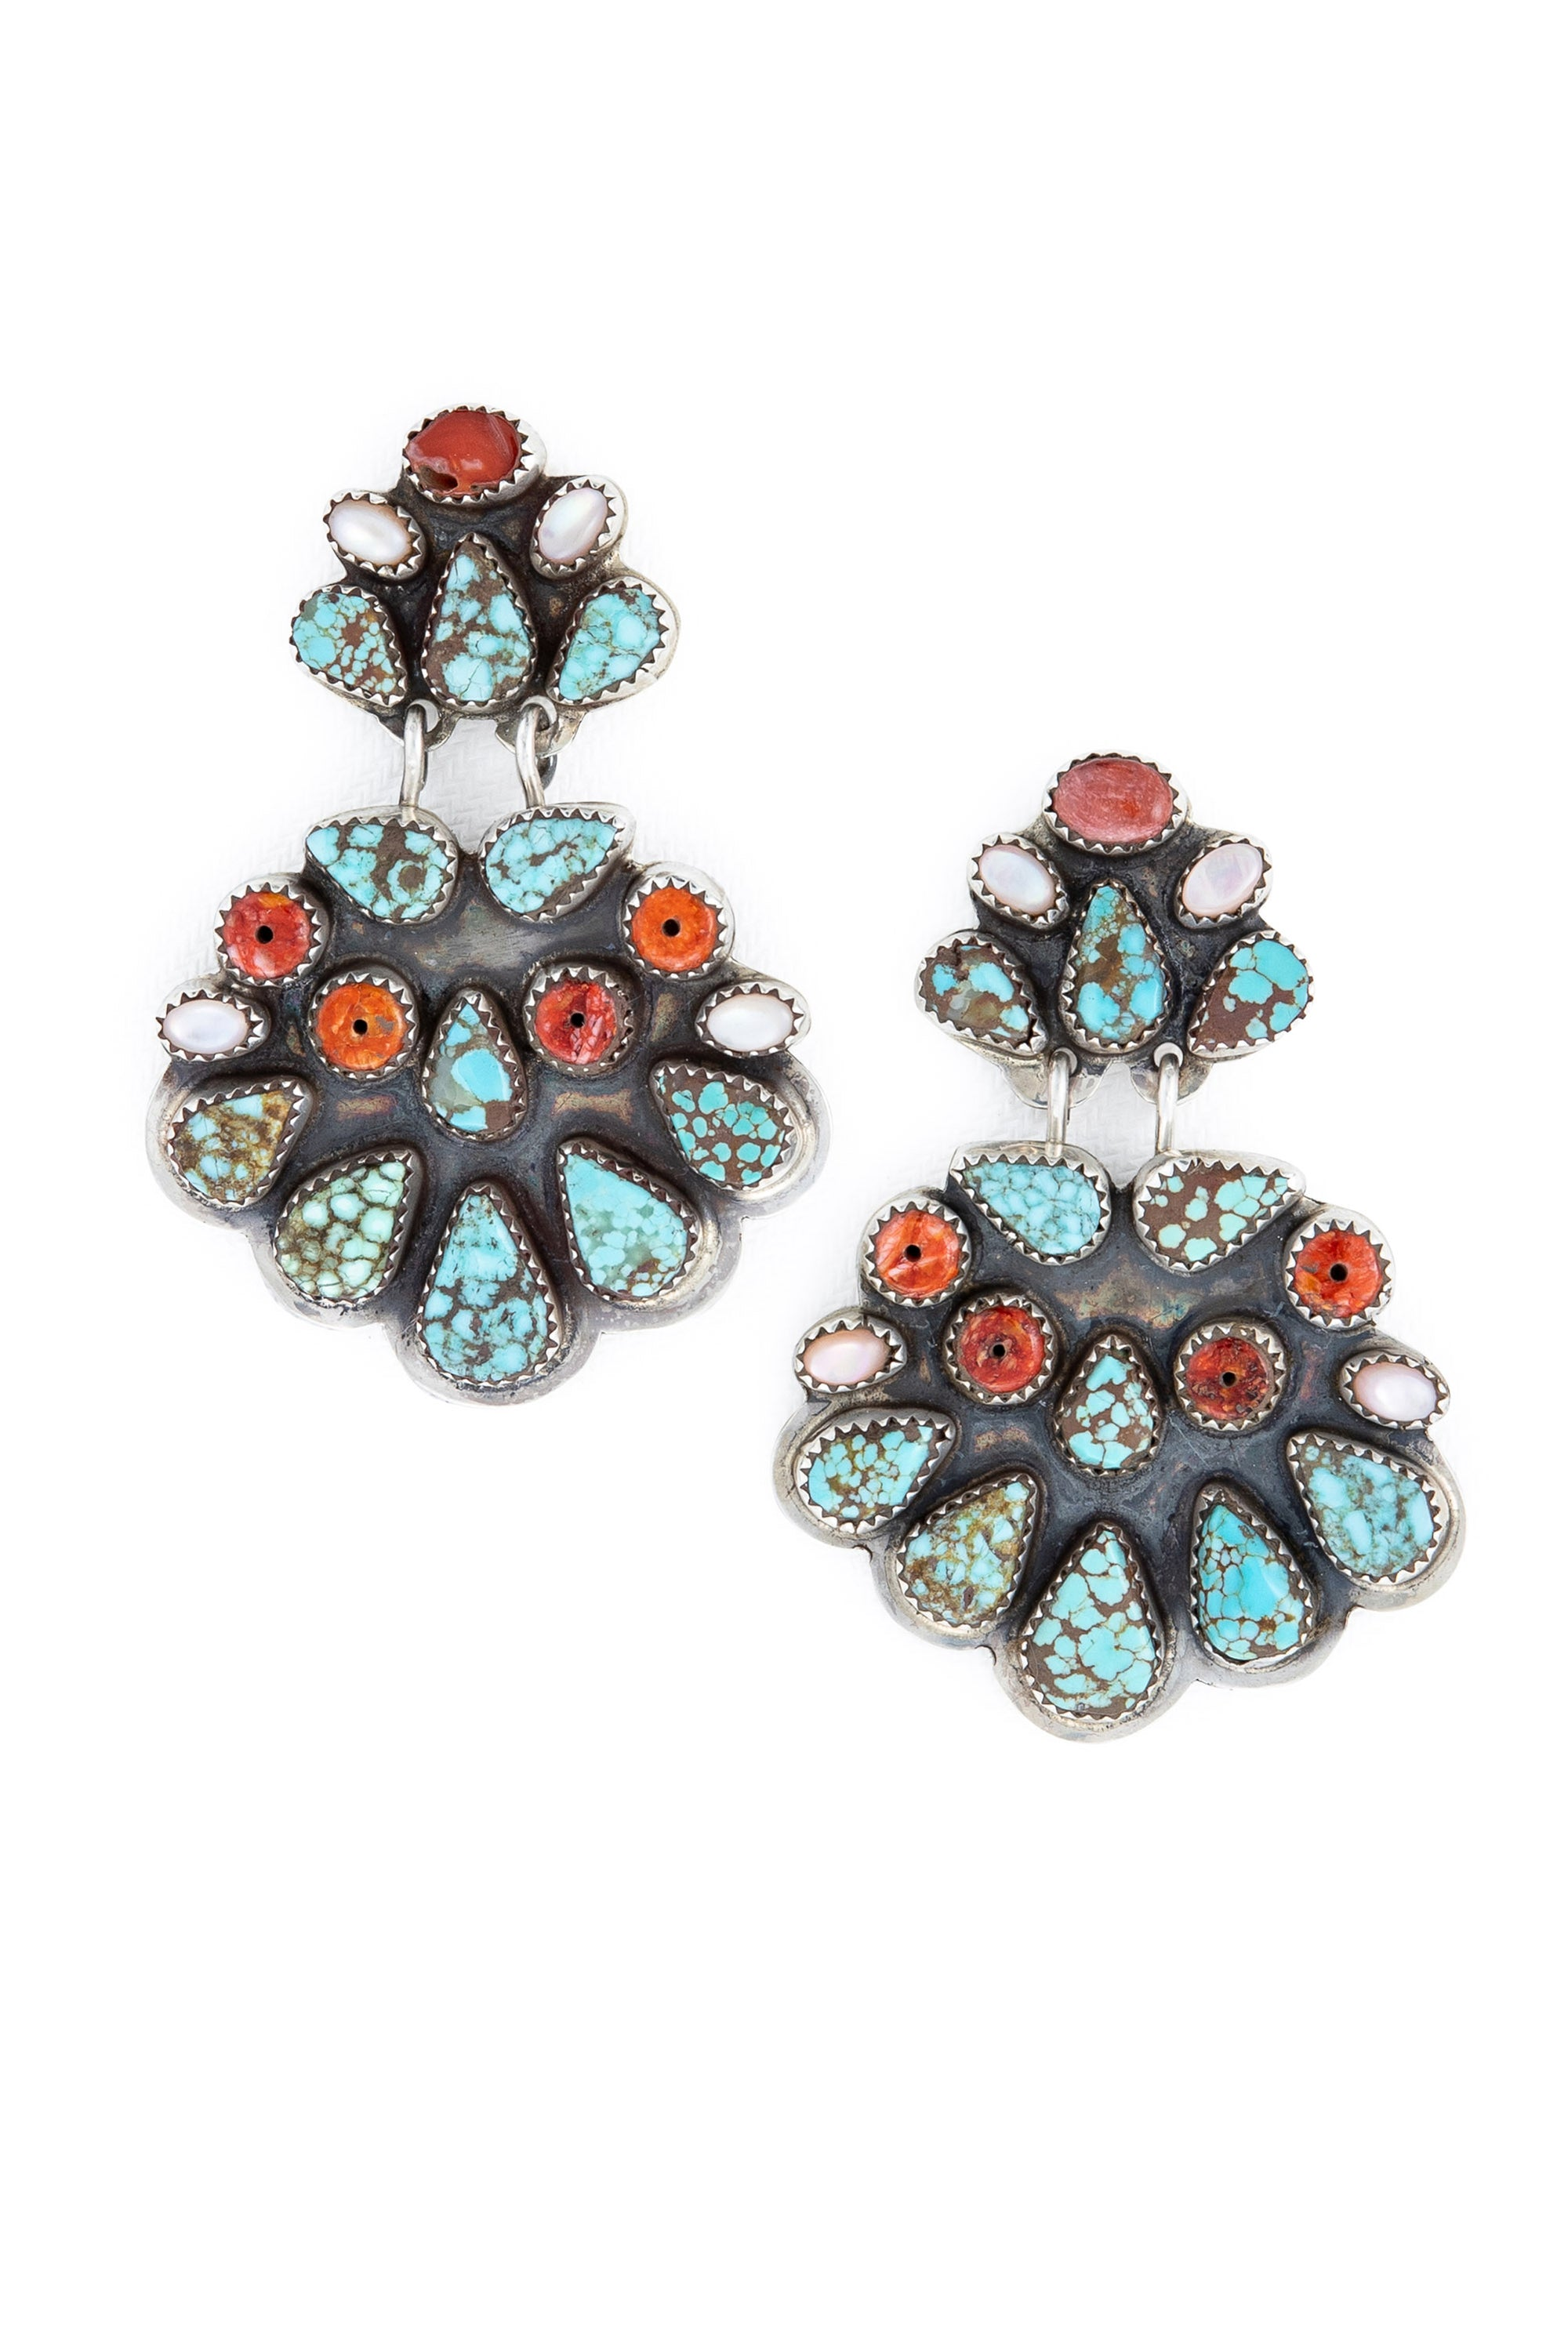 Earrings, Chandelier, Turquoise & Coral, Oscar Betz, Hallmark, Vintage, Estate, 563